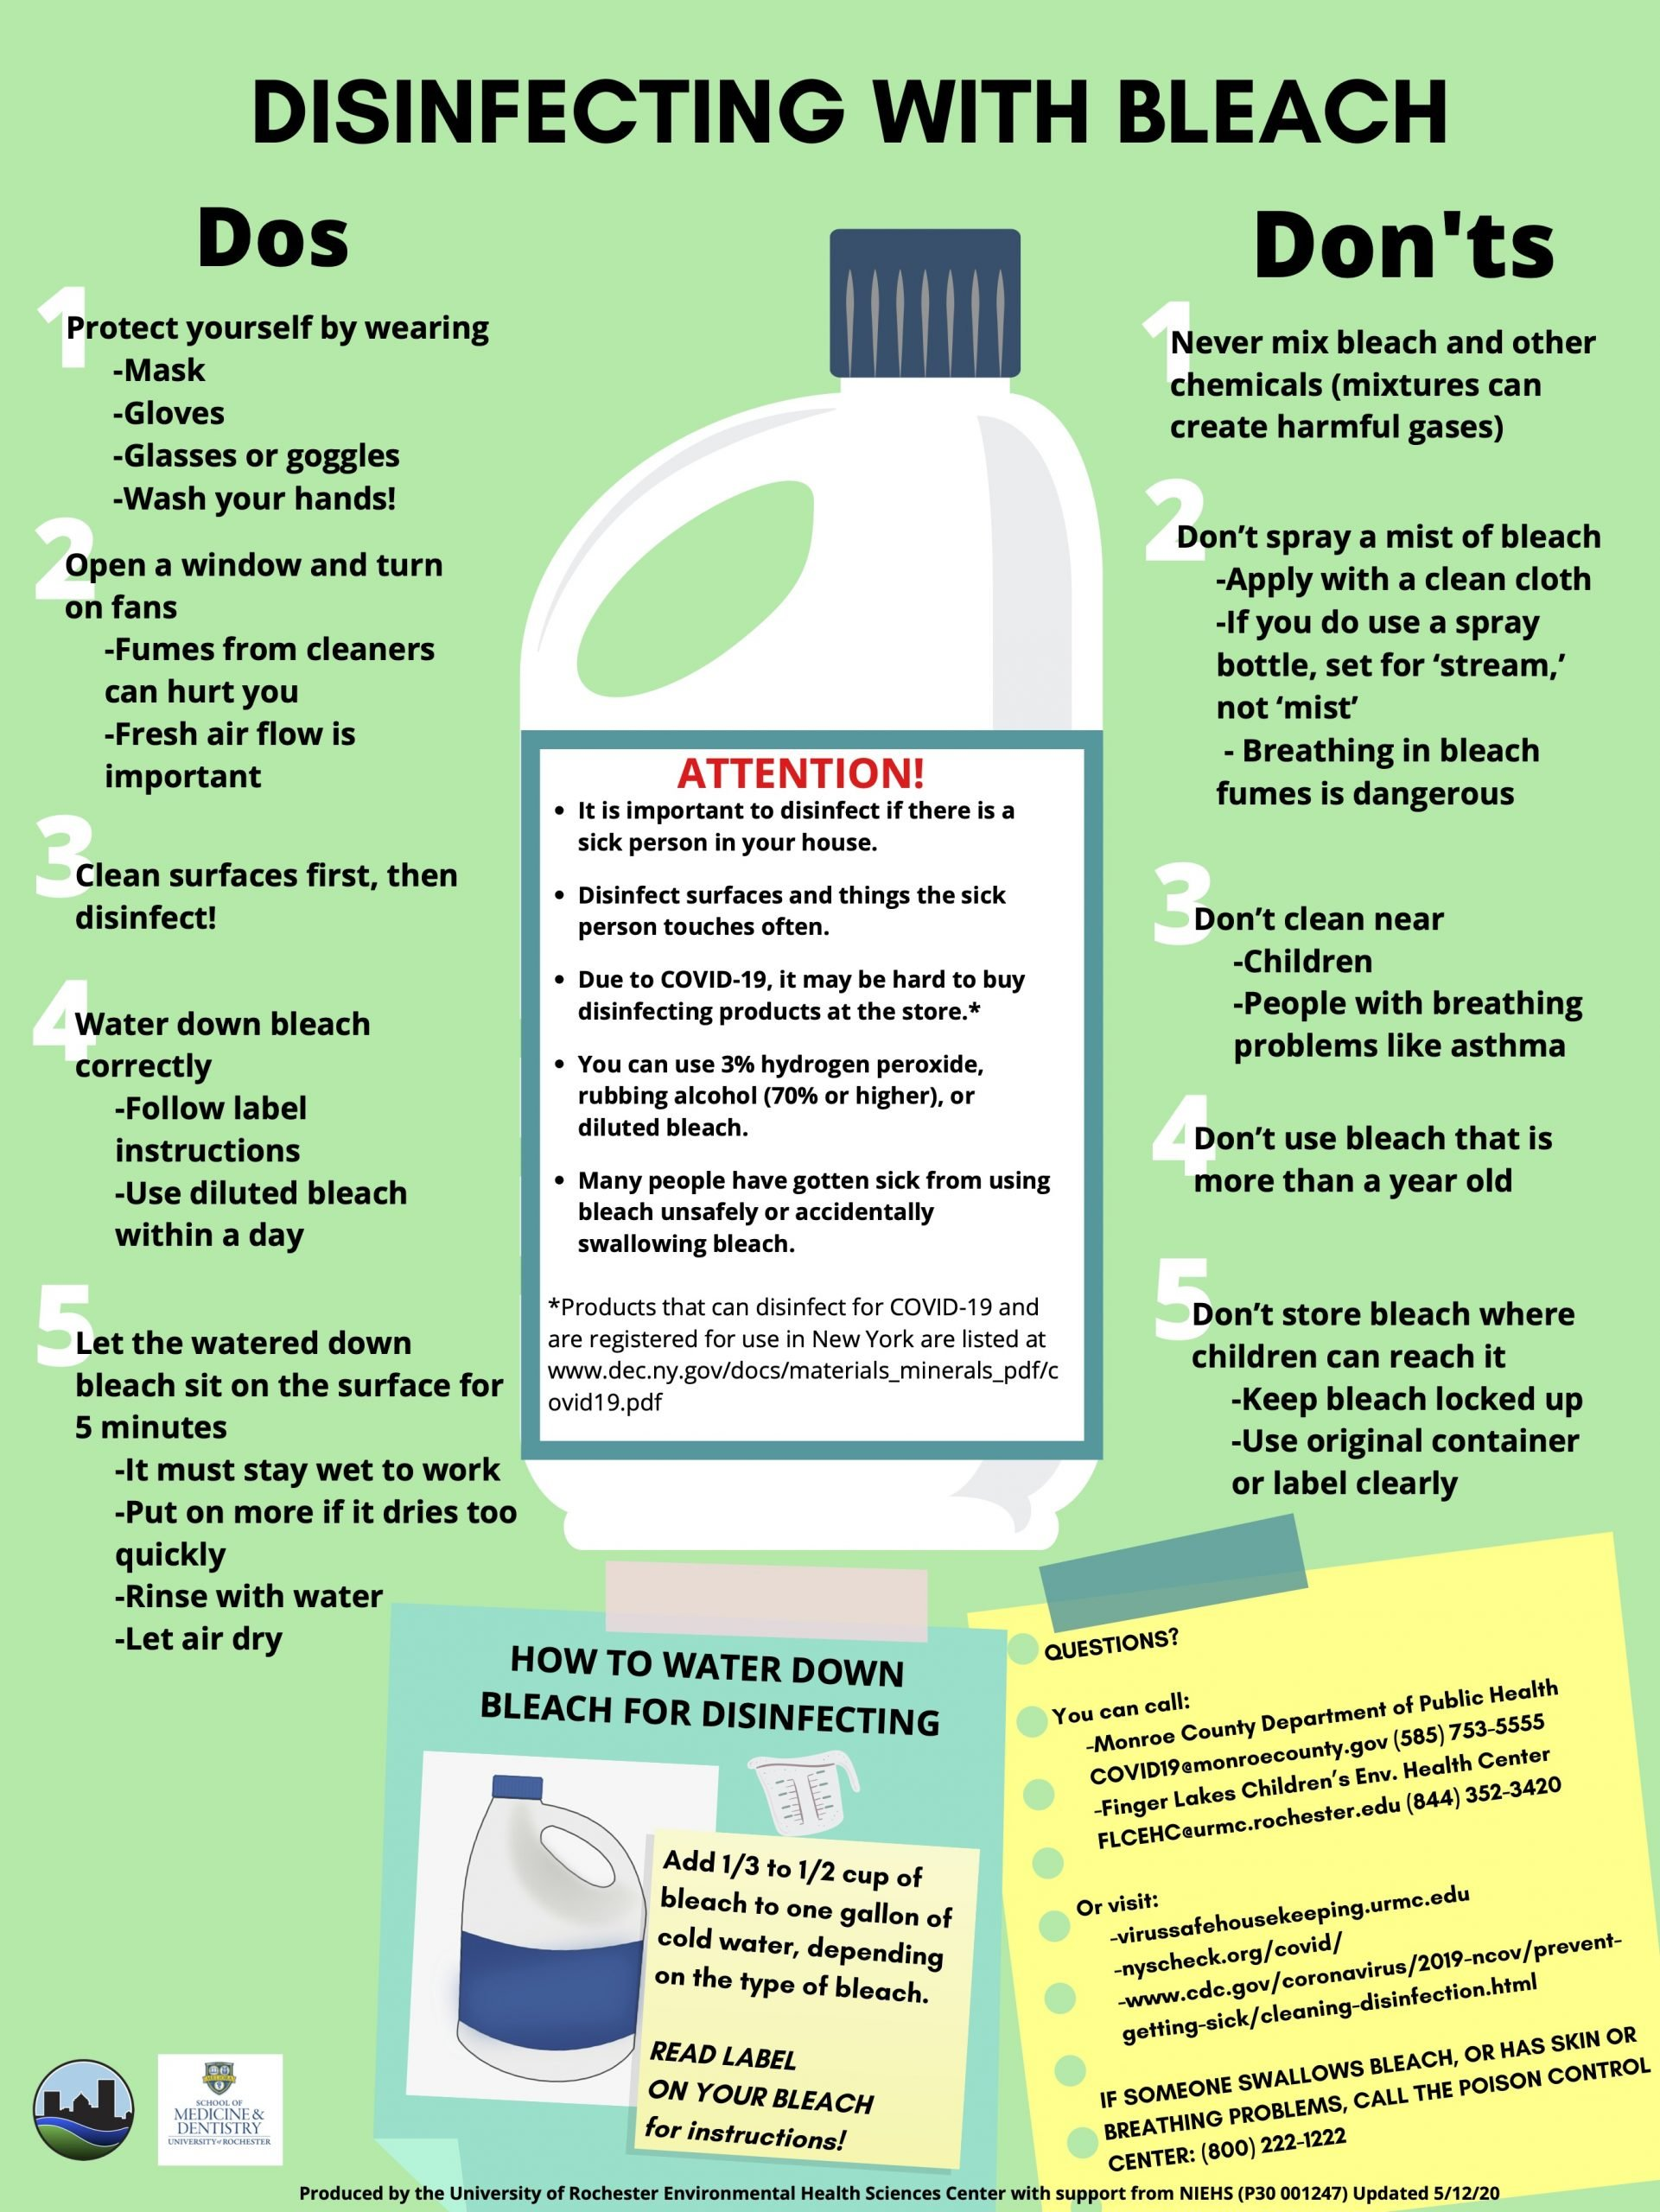 DOs AND DON'Ts FOR DISINFECTING WITH BLEACH 51220 (1)